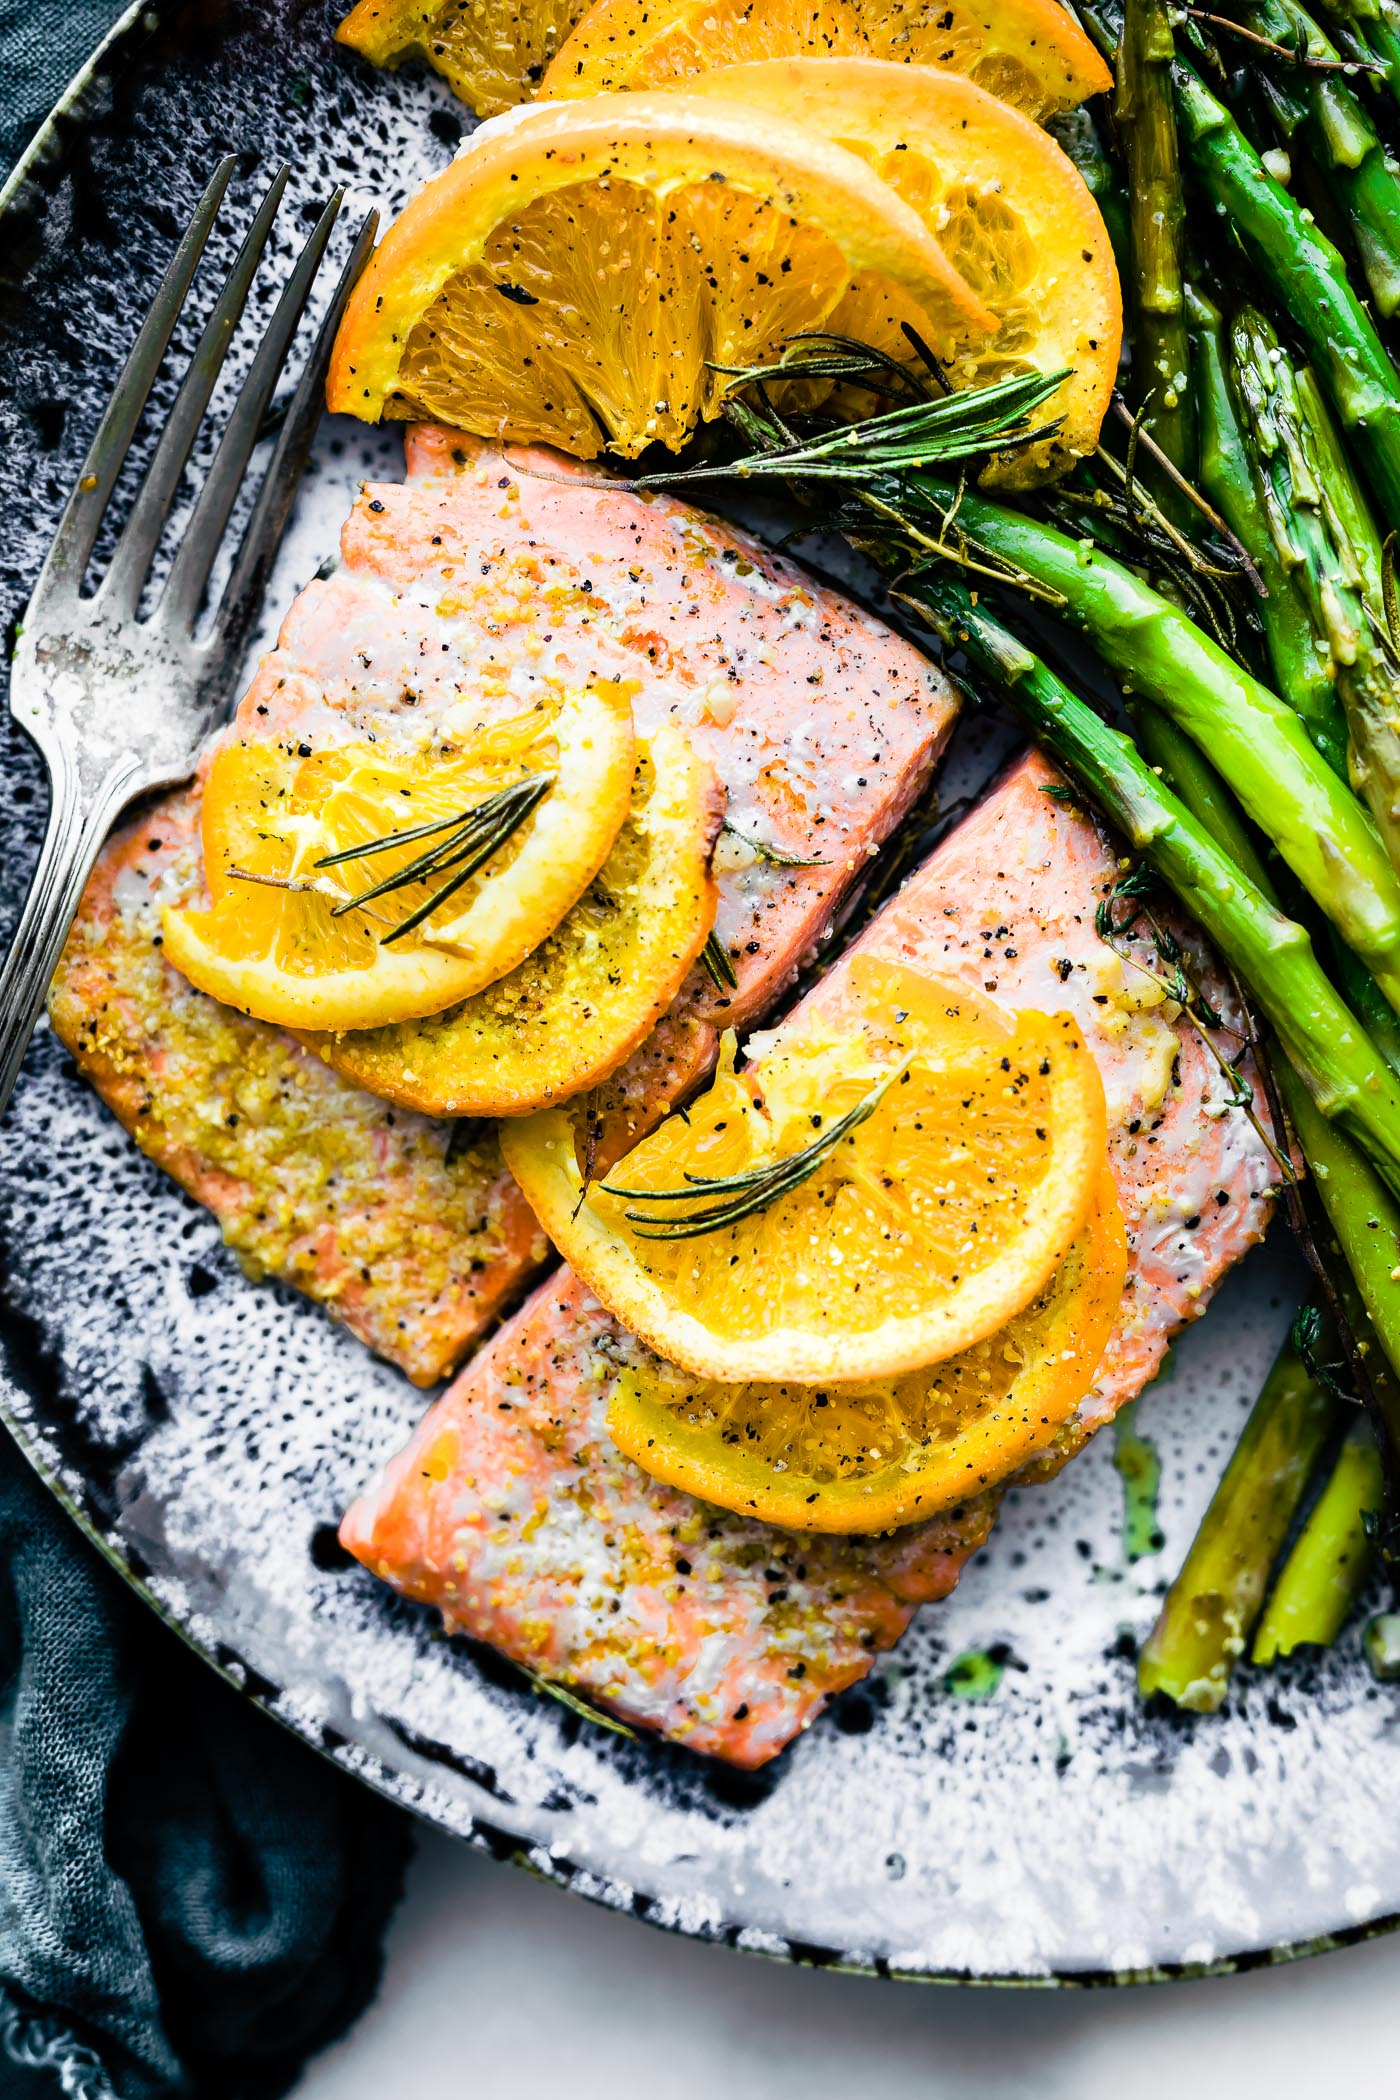 Rosemary-Citrus-One-Pan-Baked-Salmon.jpg